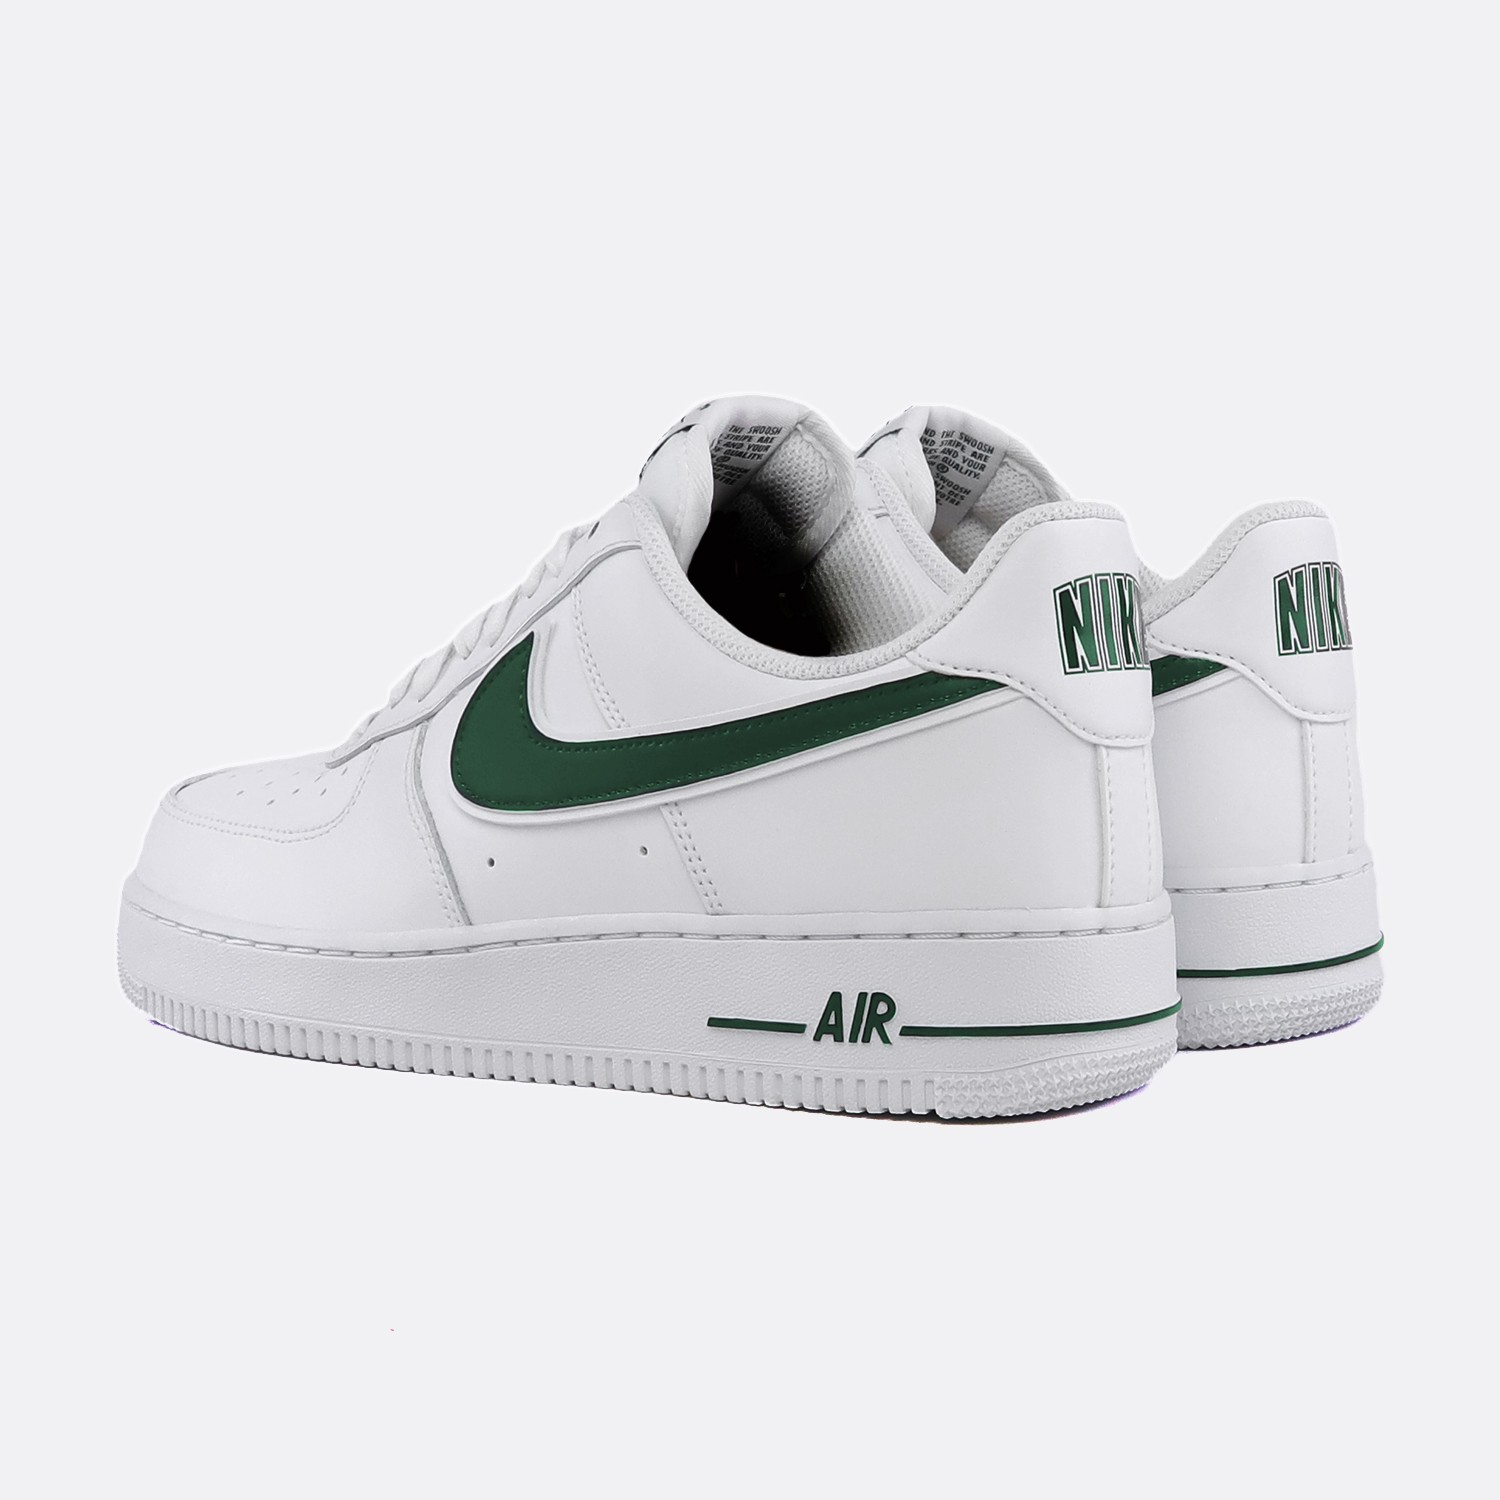 detailed look 6ee0d 63bf8 NIKE AIR FORCE 1  07 3 WHITE  COSMIC BONSAI